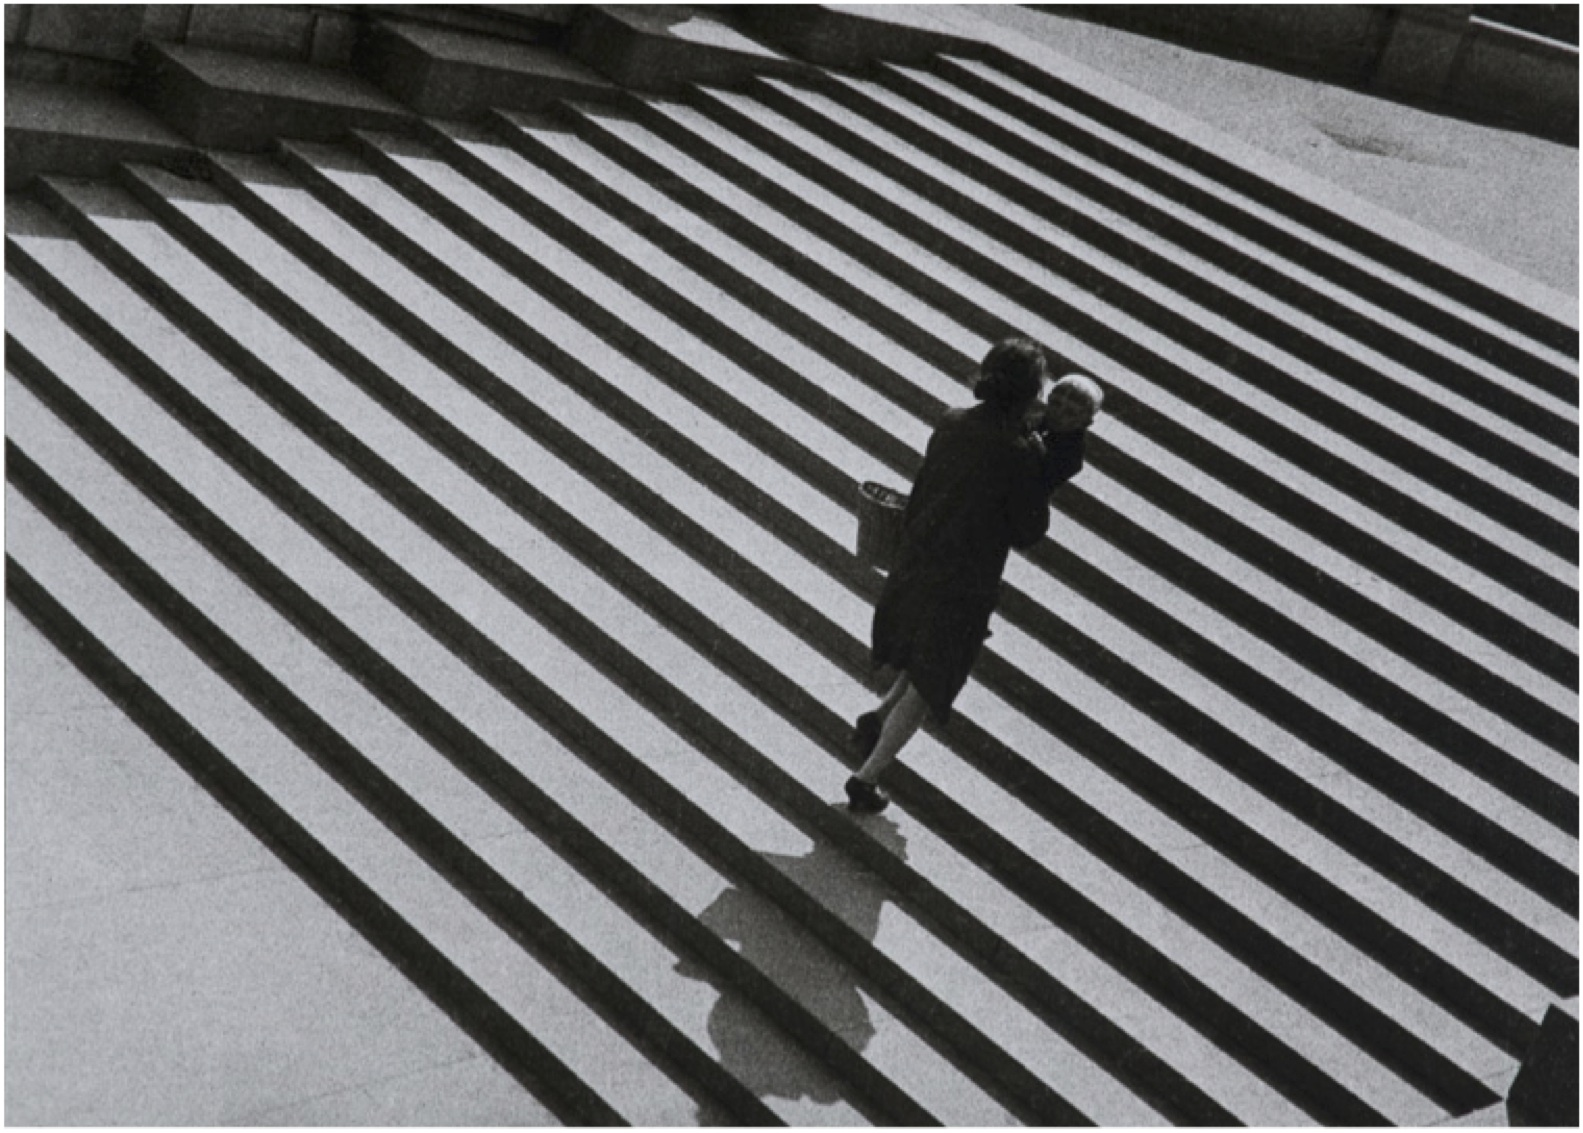 Alexander Rodchenko, Stairs of the Holy Saviour, 1930